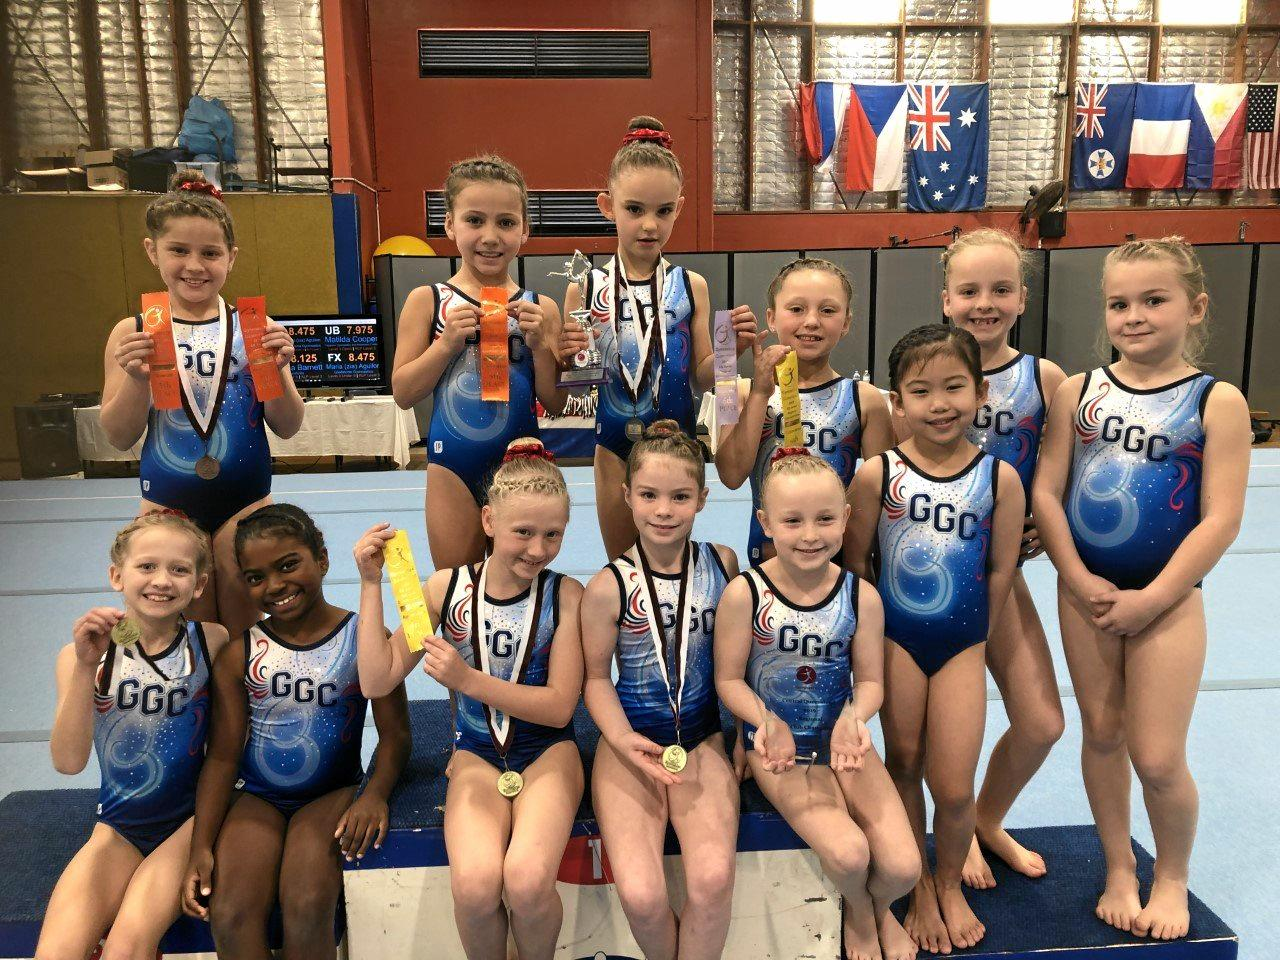 Photo 4: WAG level 3Millan Ibbotson, Laynie Mallie-Roberts, Elle-Jaye Attard, Lucie Burtson-Johnston, Maddison Young, Taylor Bradly, Cadence Cairns, Catherine Manhertz, Isabella Markham, Brialan Brown, Lucy Glass, Zia Aguilon